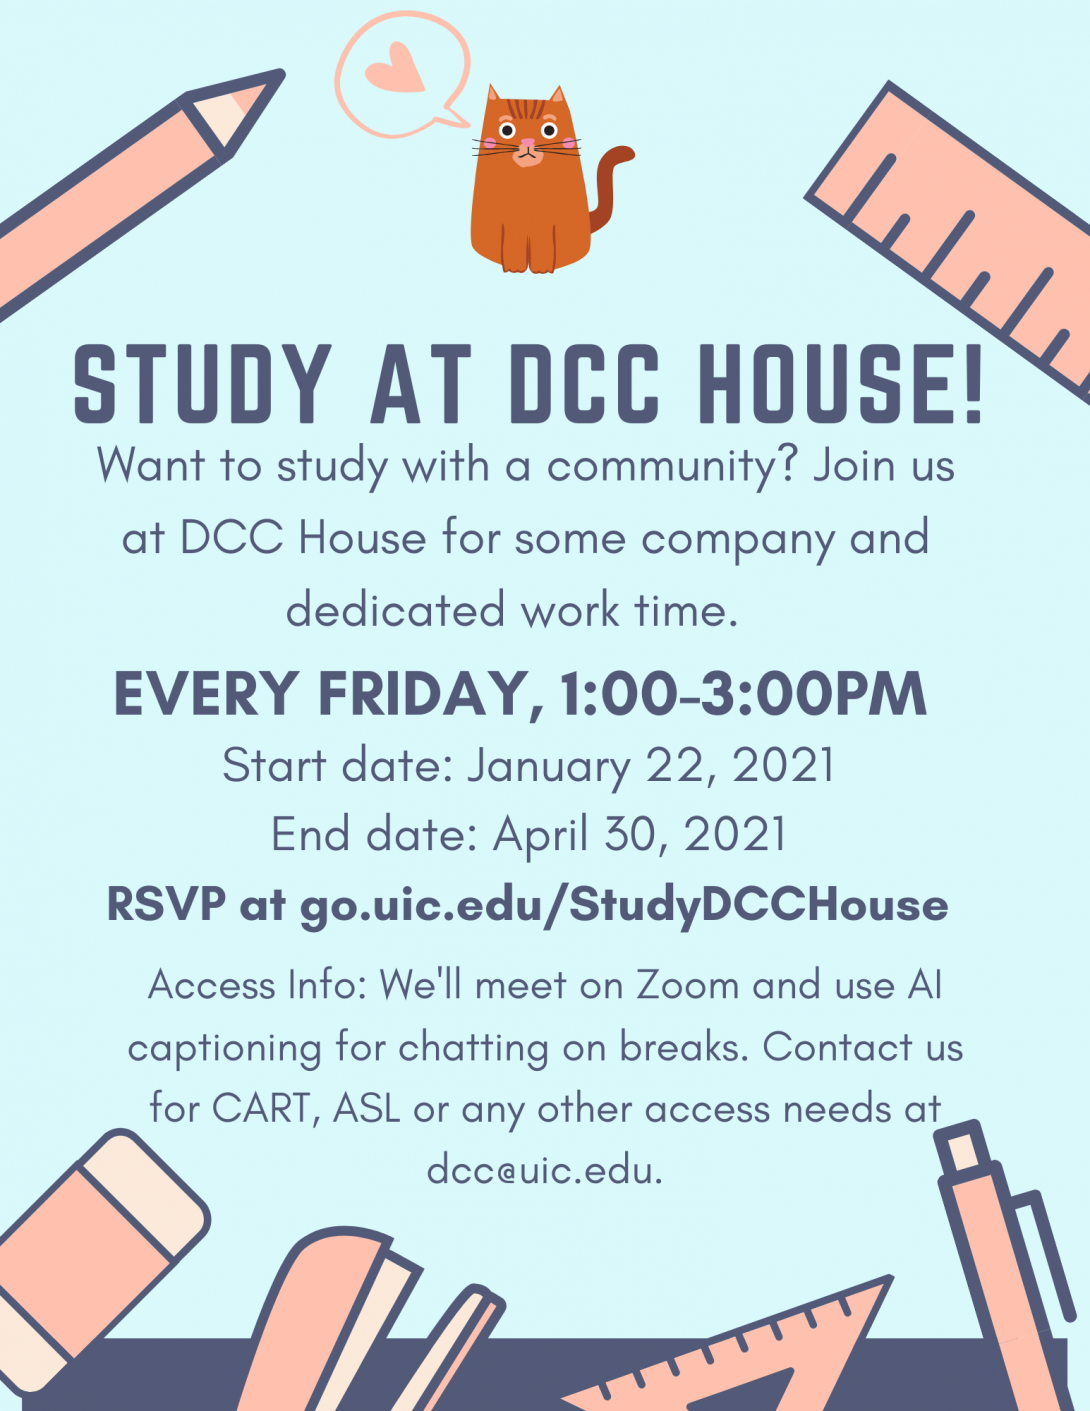 Study at DCC House! Flyer